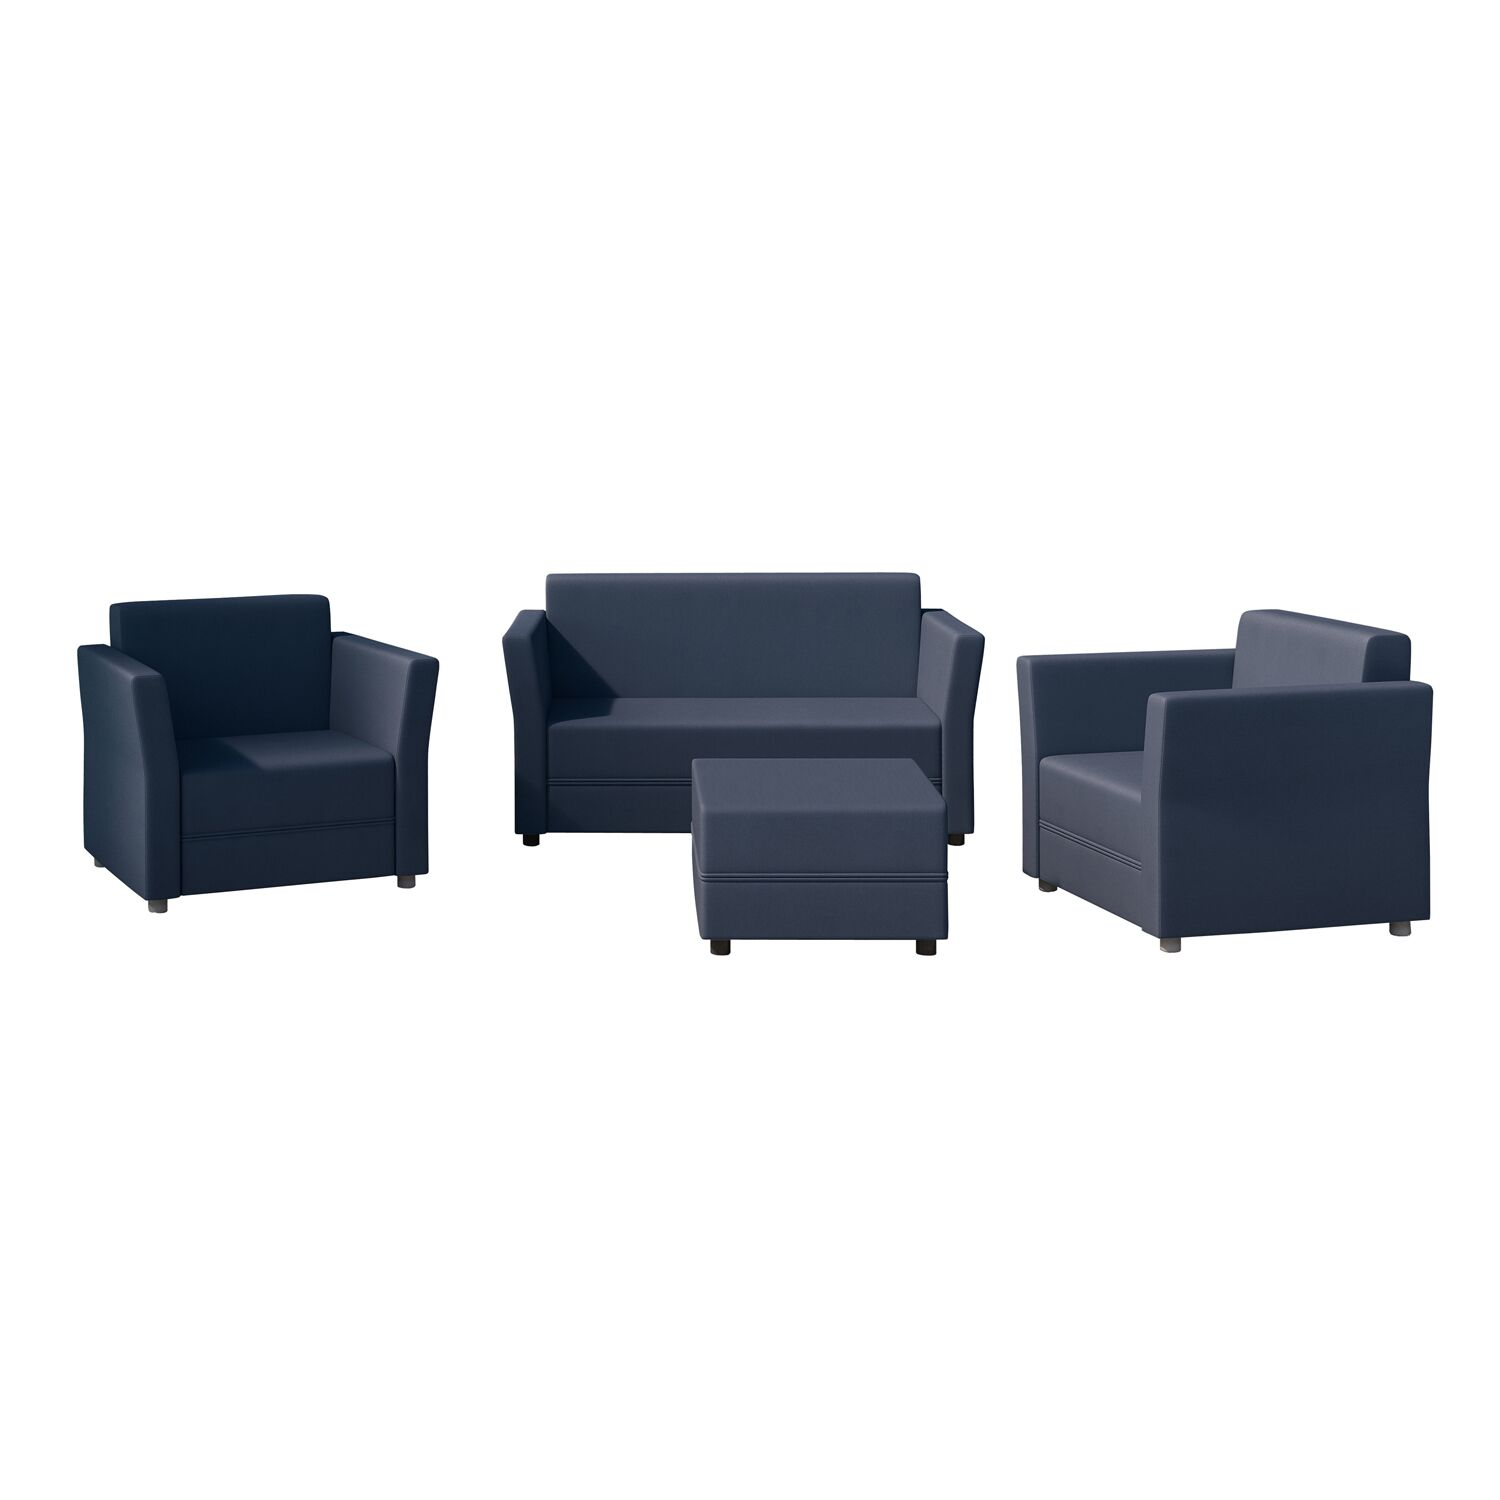 Verona 4 Piece Sofa Set with Cushions Color: Blue